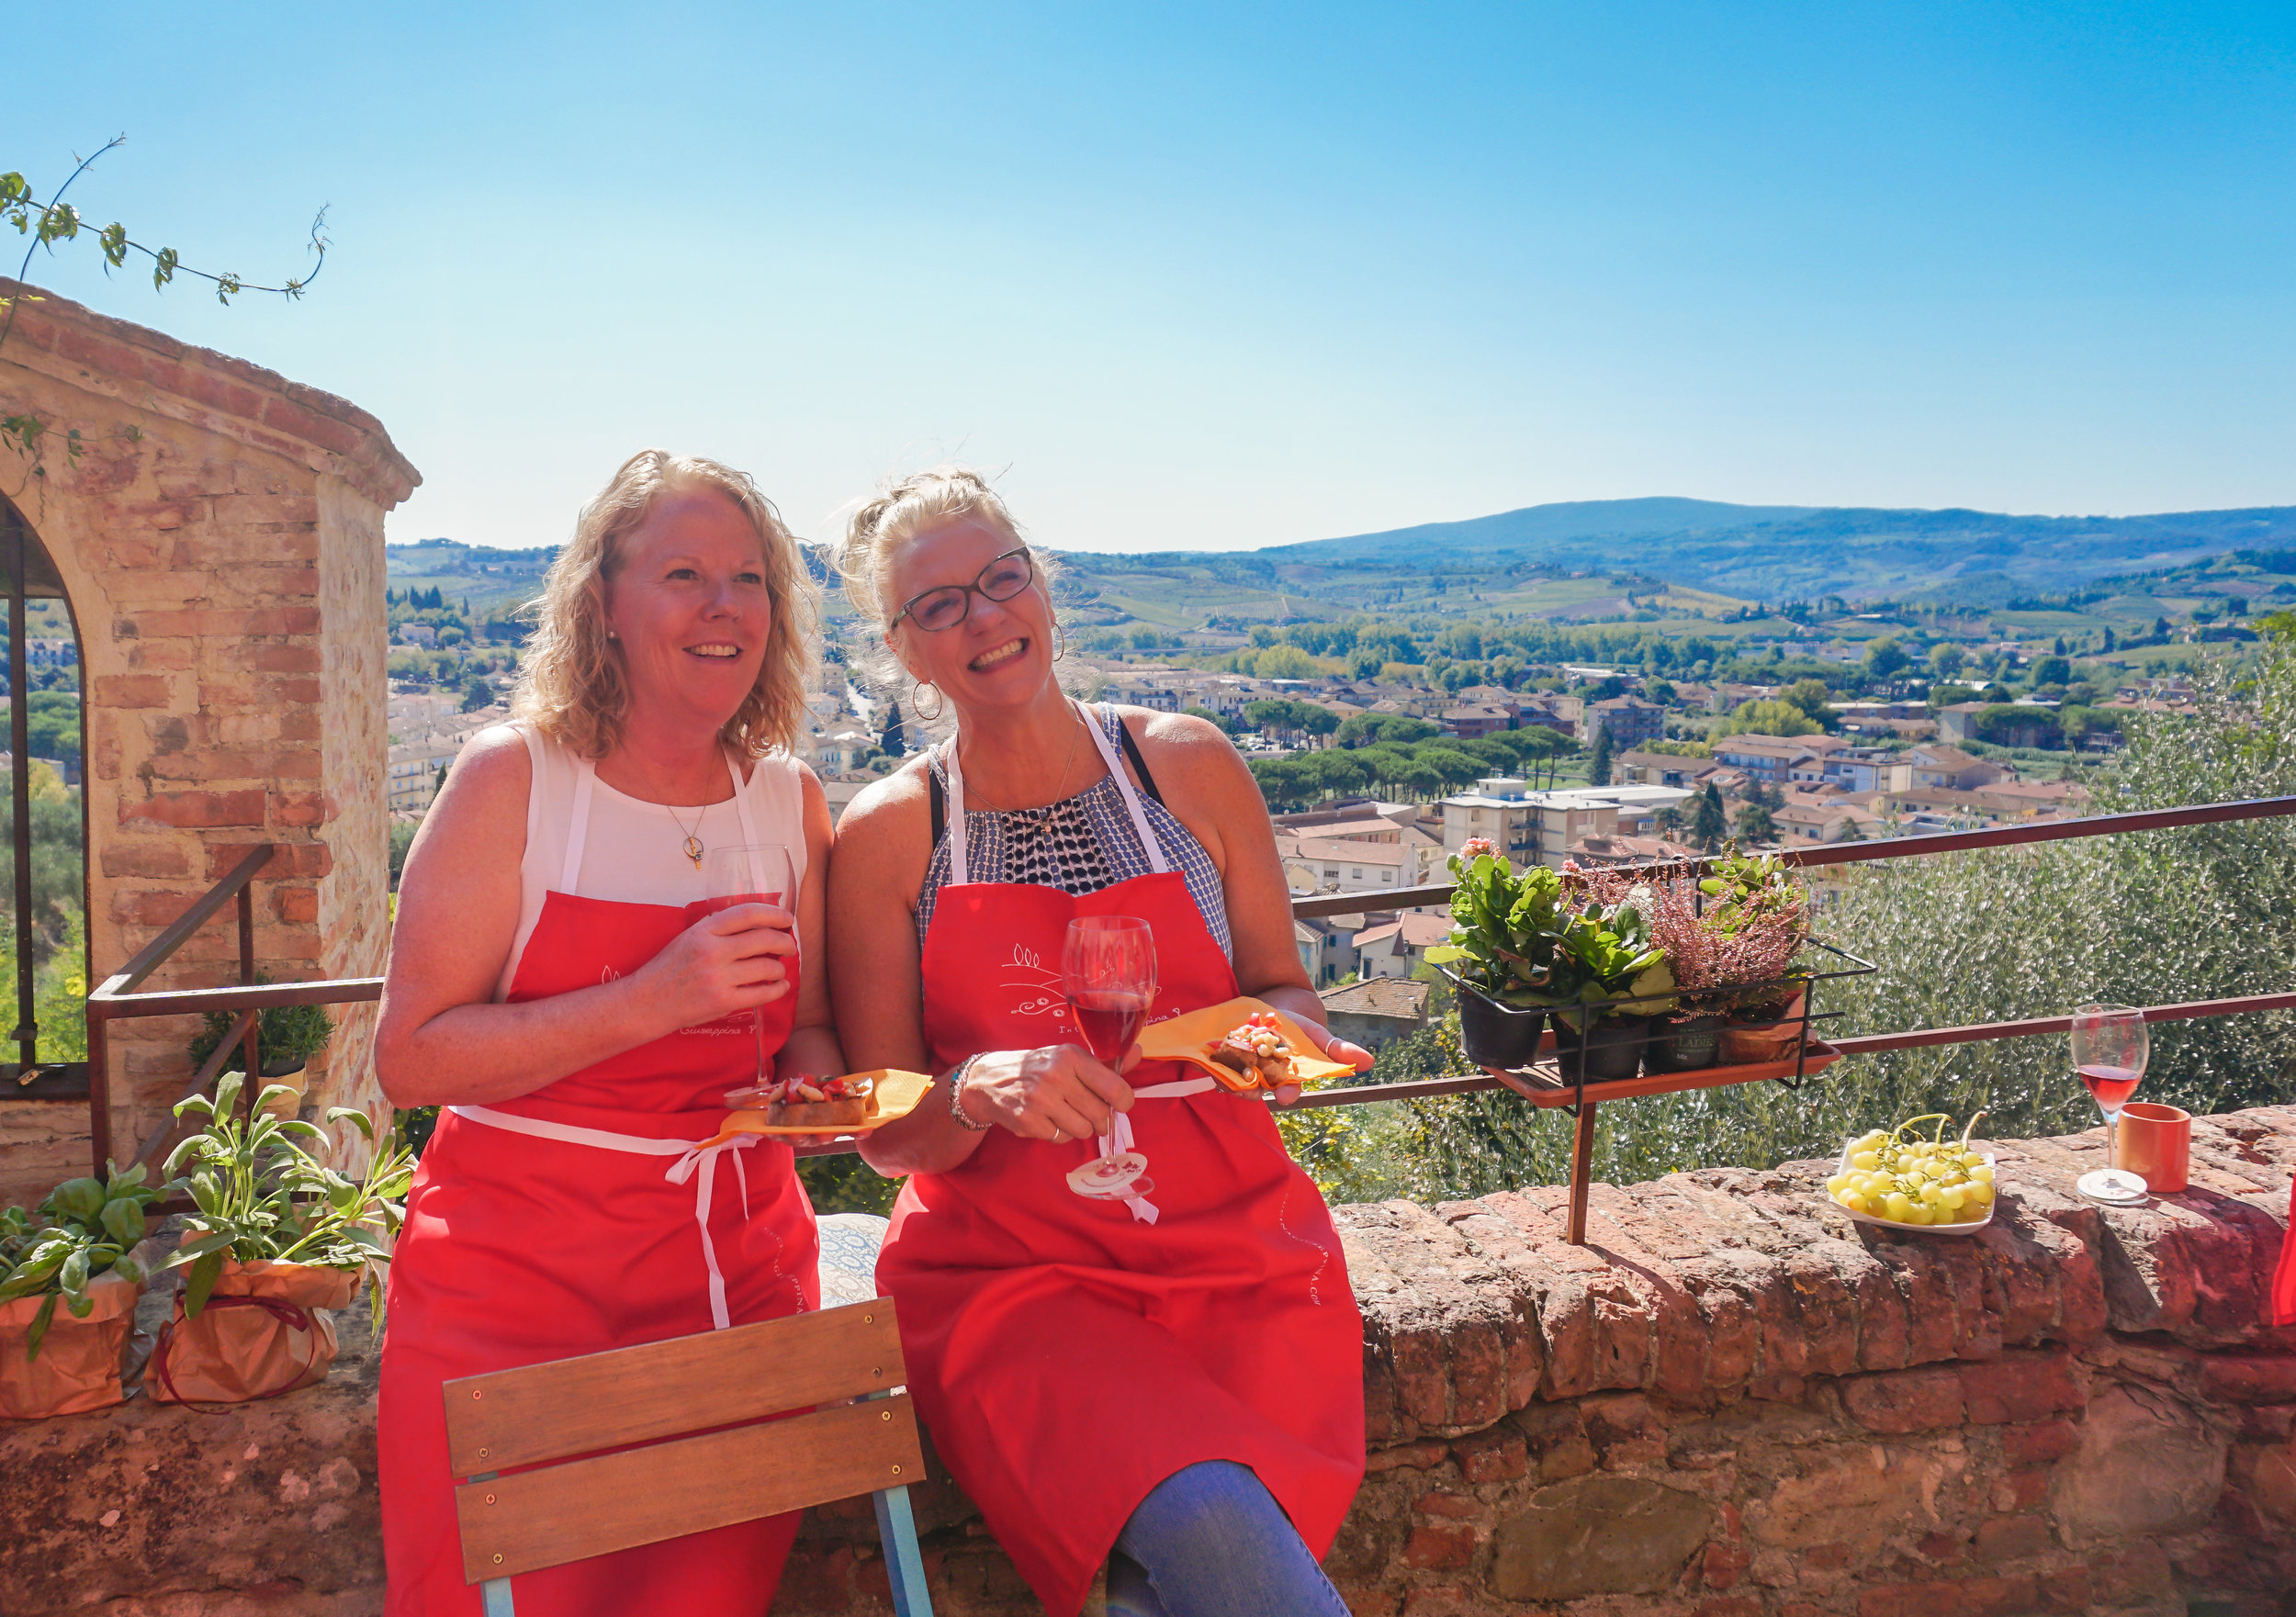 A break from cooking class with a view of the tuscan countryside. A VIEW LIKE THIS WOULD INSPIRE ANYONE TO COOK FABULOUS TUSCAN FOOD!